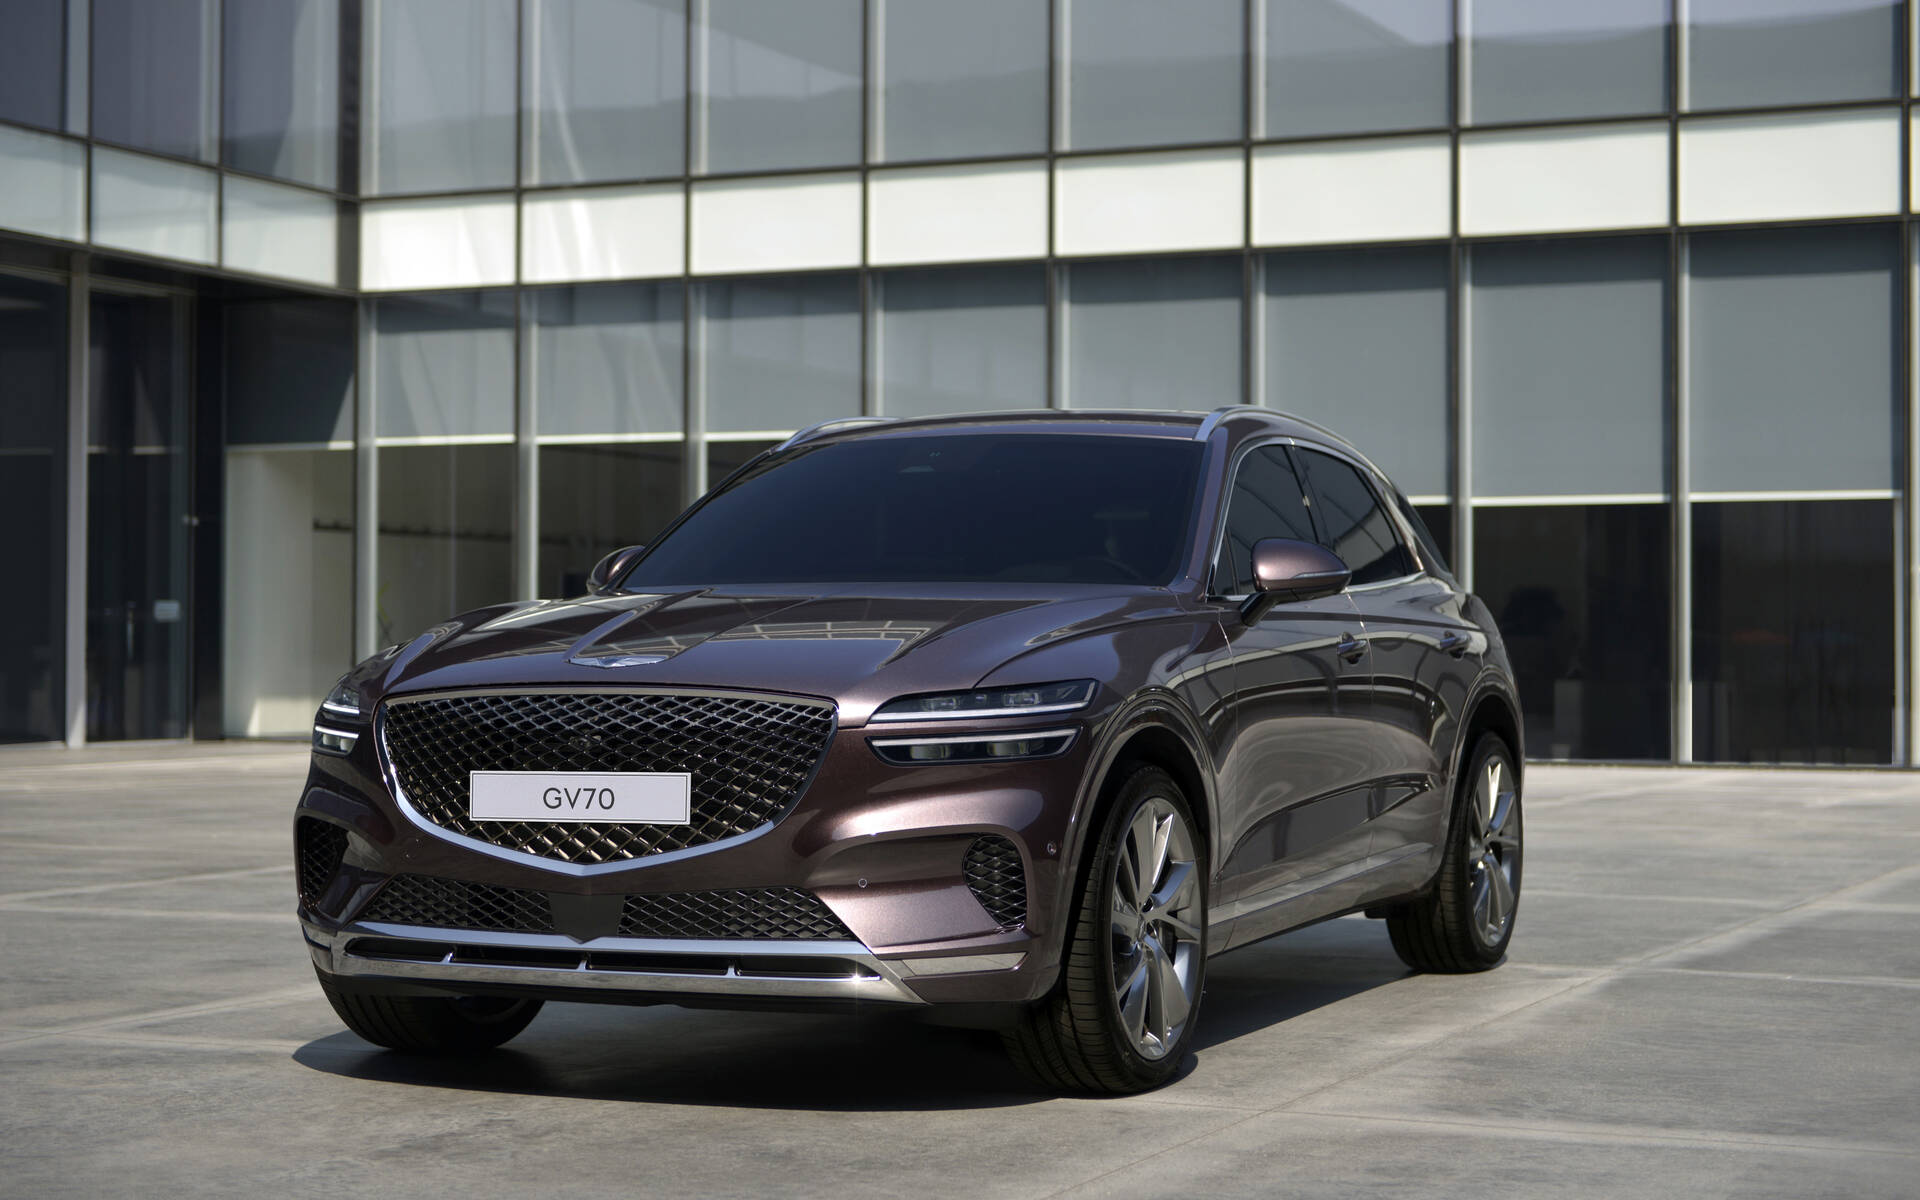 2022 Genesis GV70 is Officially Revealed, Looks Pretty ...